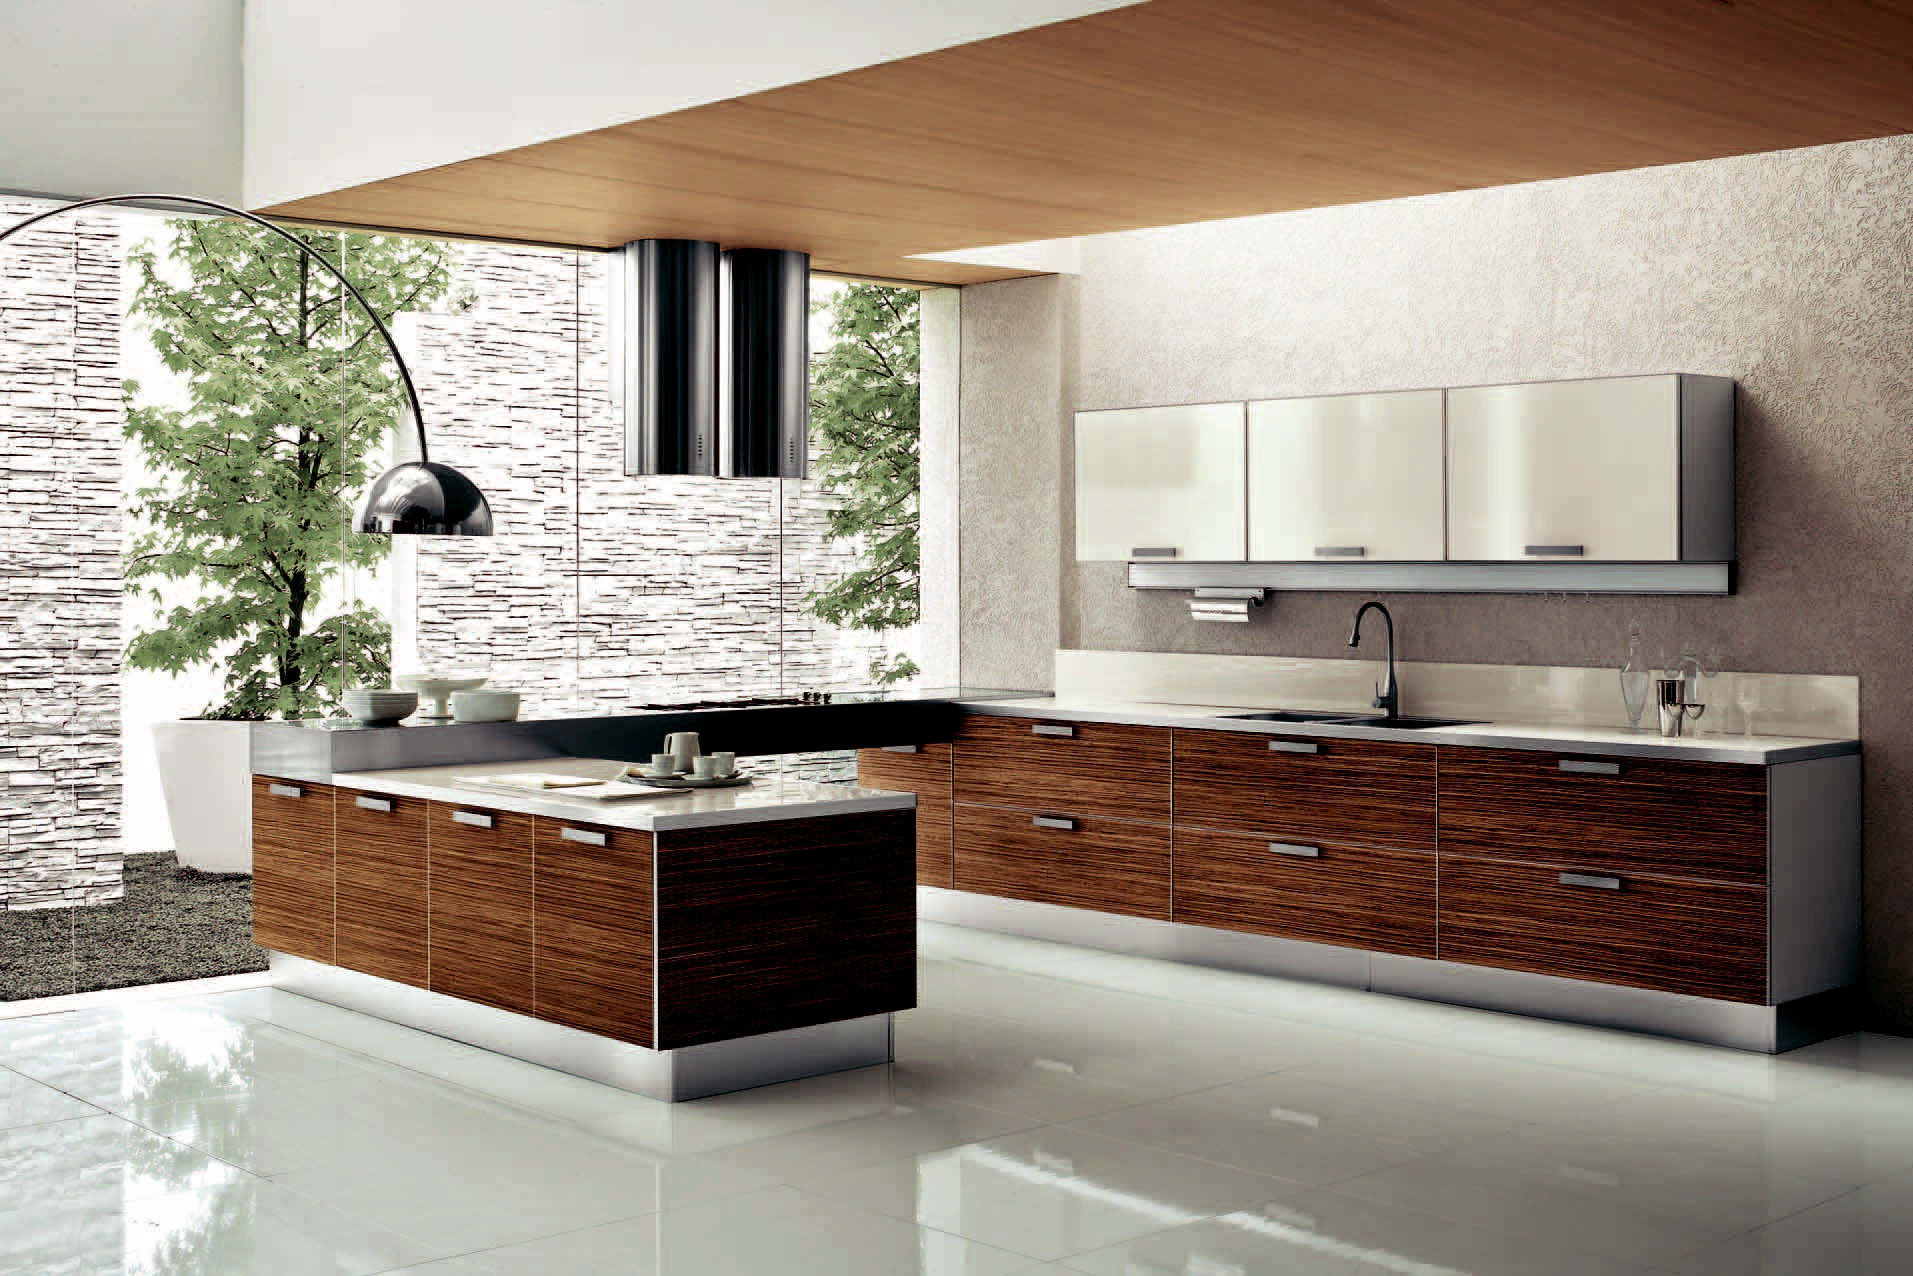 Beyond kitchens kitchen cupboards cape town kitchens for Kitchen design pictures